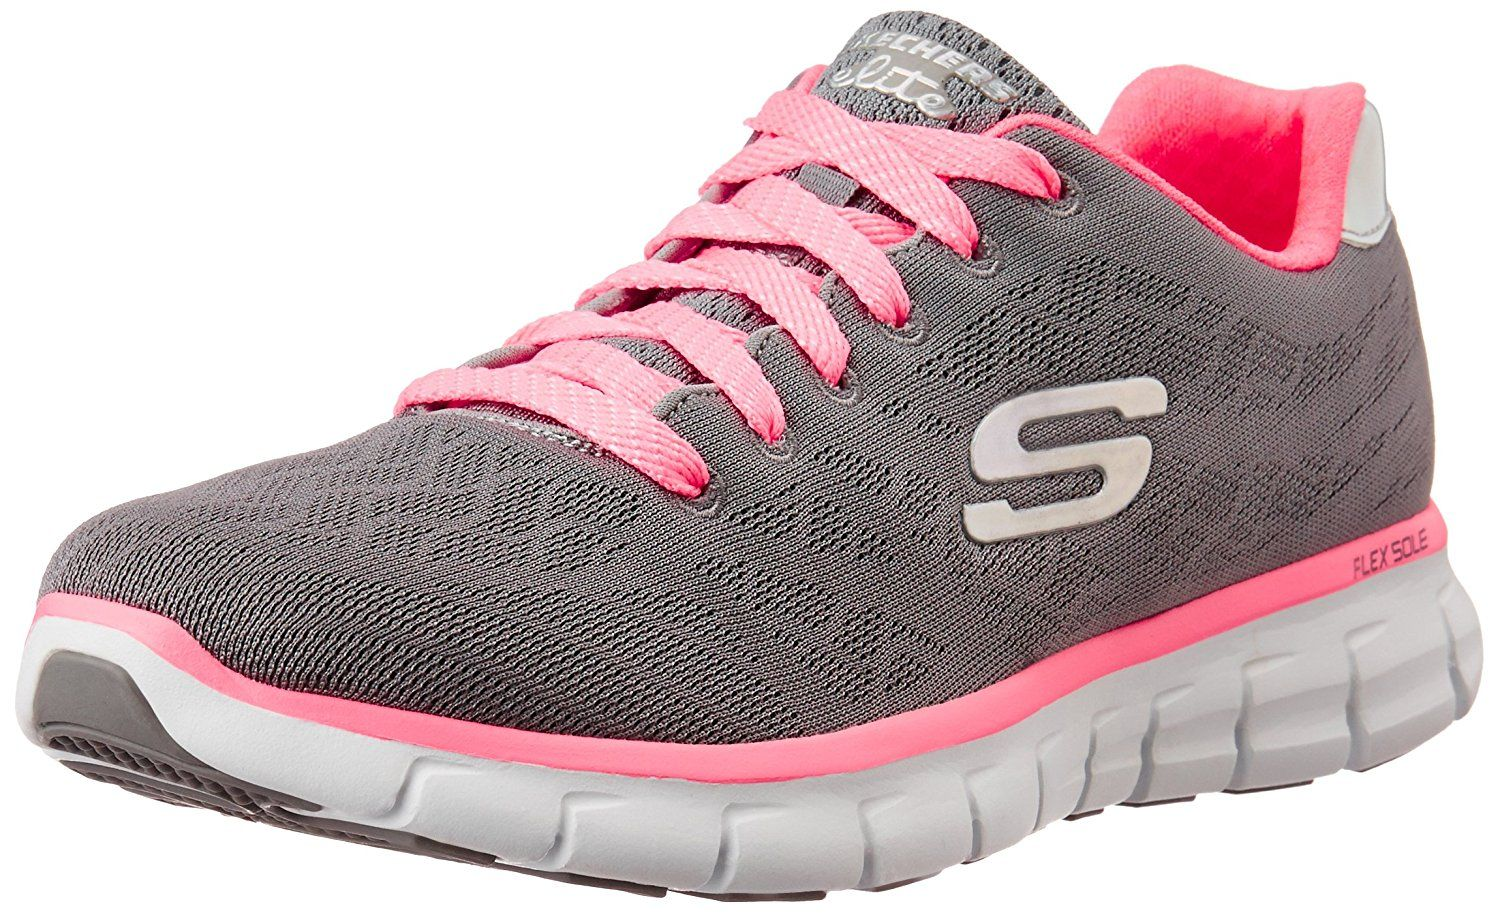 new arrival bc168 132ae Skechers Women s Synergy Charcoal and Pink Mesh Multisport Training Shoes -  3 UK India (